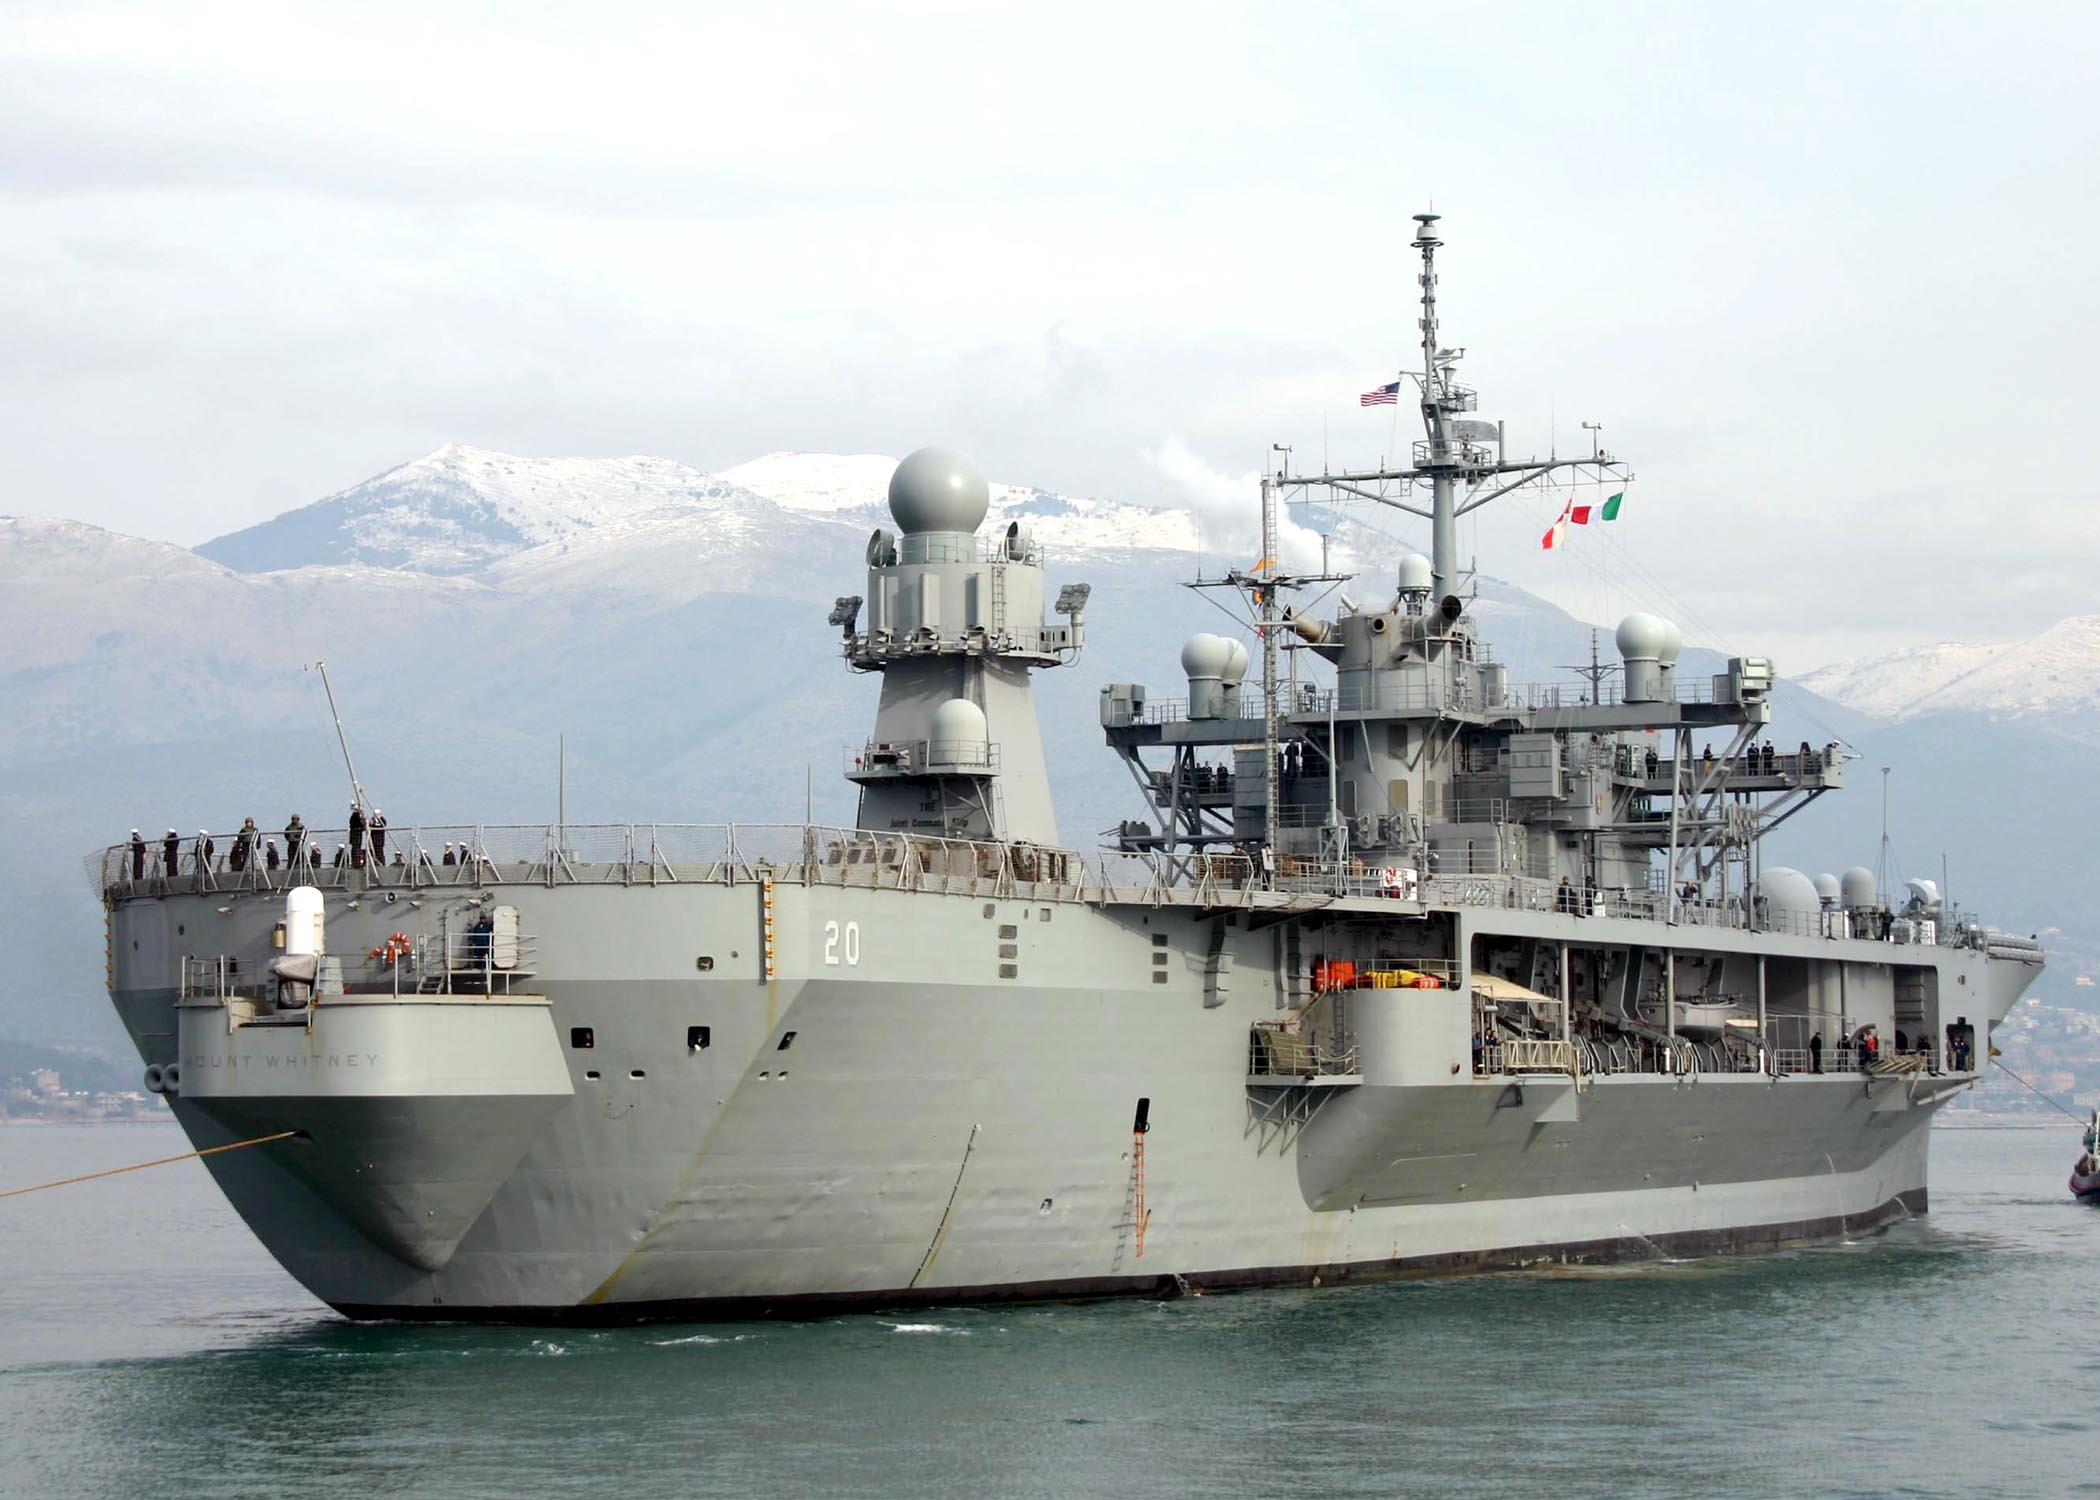 Home Comforts The Blue Ridge-class command ship USS Mount Whitney (LCC 20) pulls into Gaeta Harbor in Italy. Mount